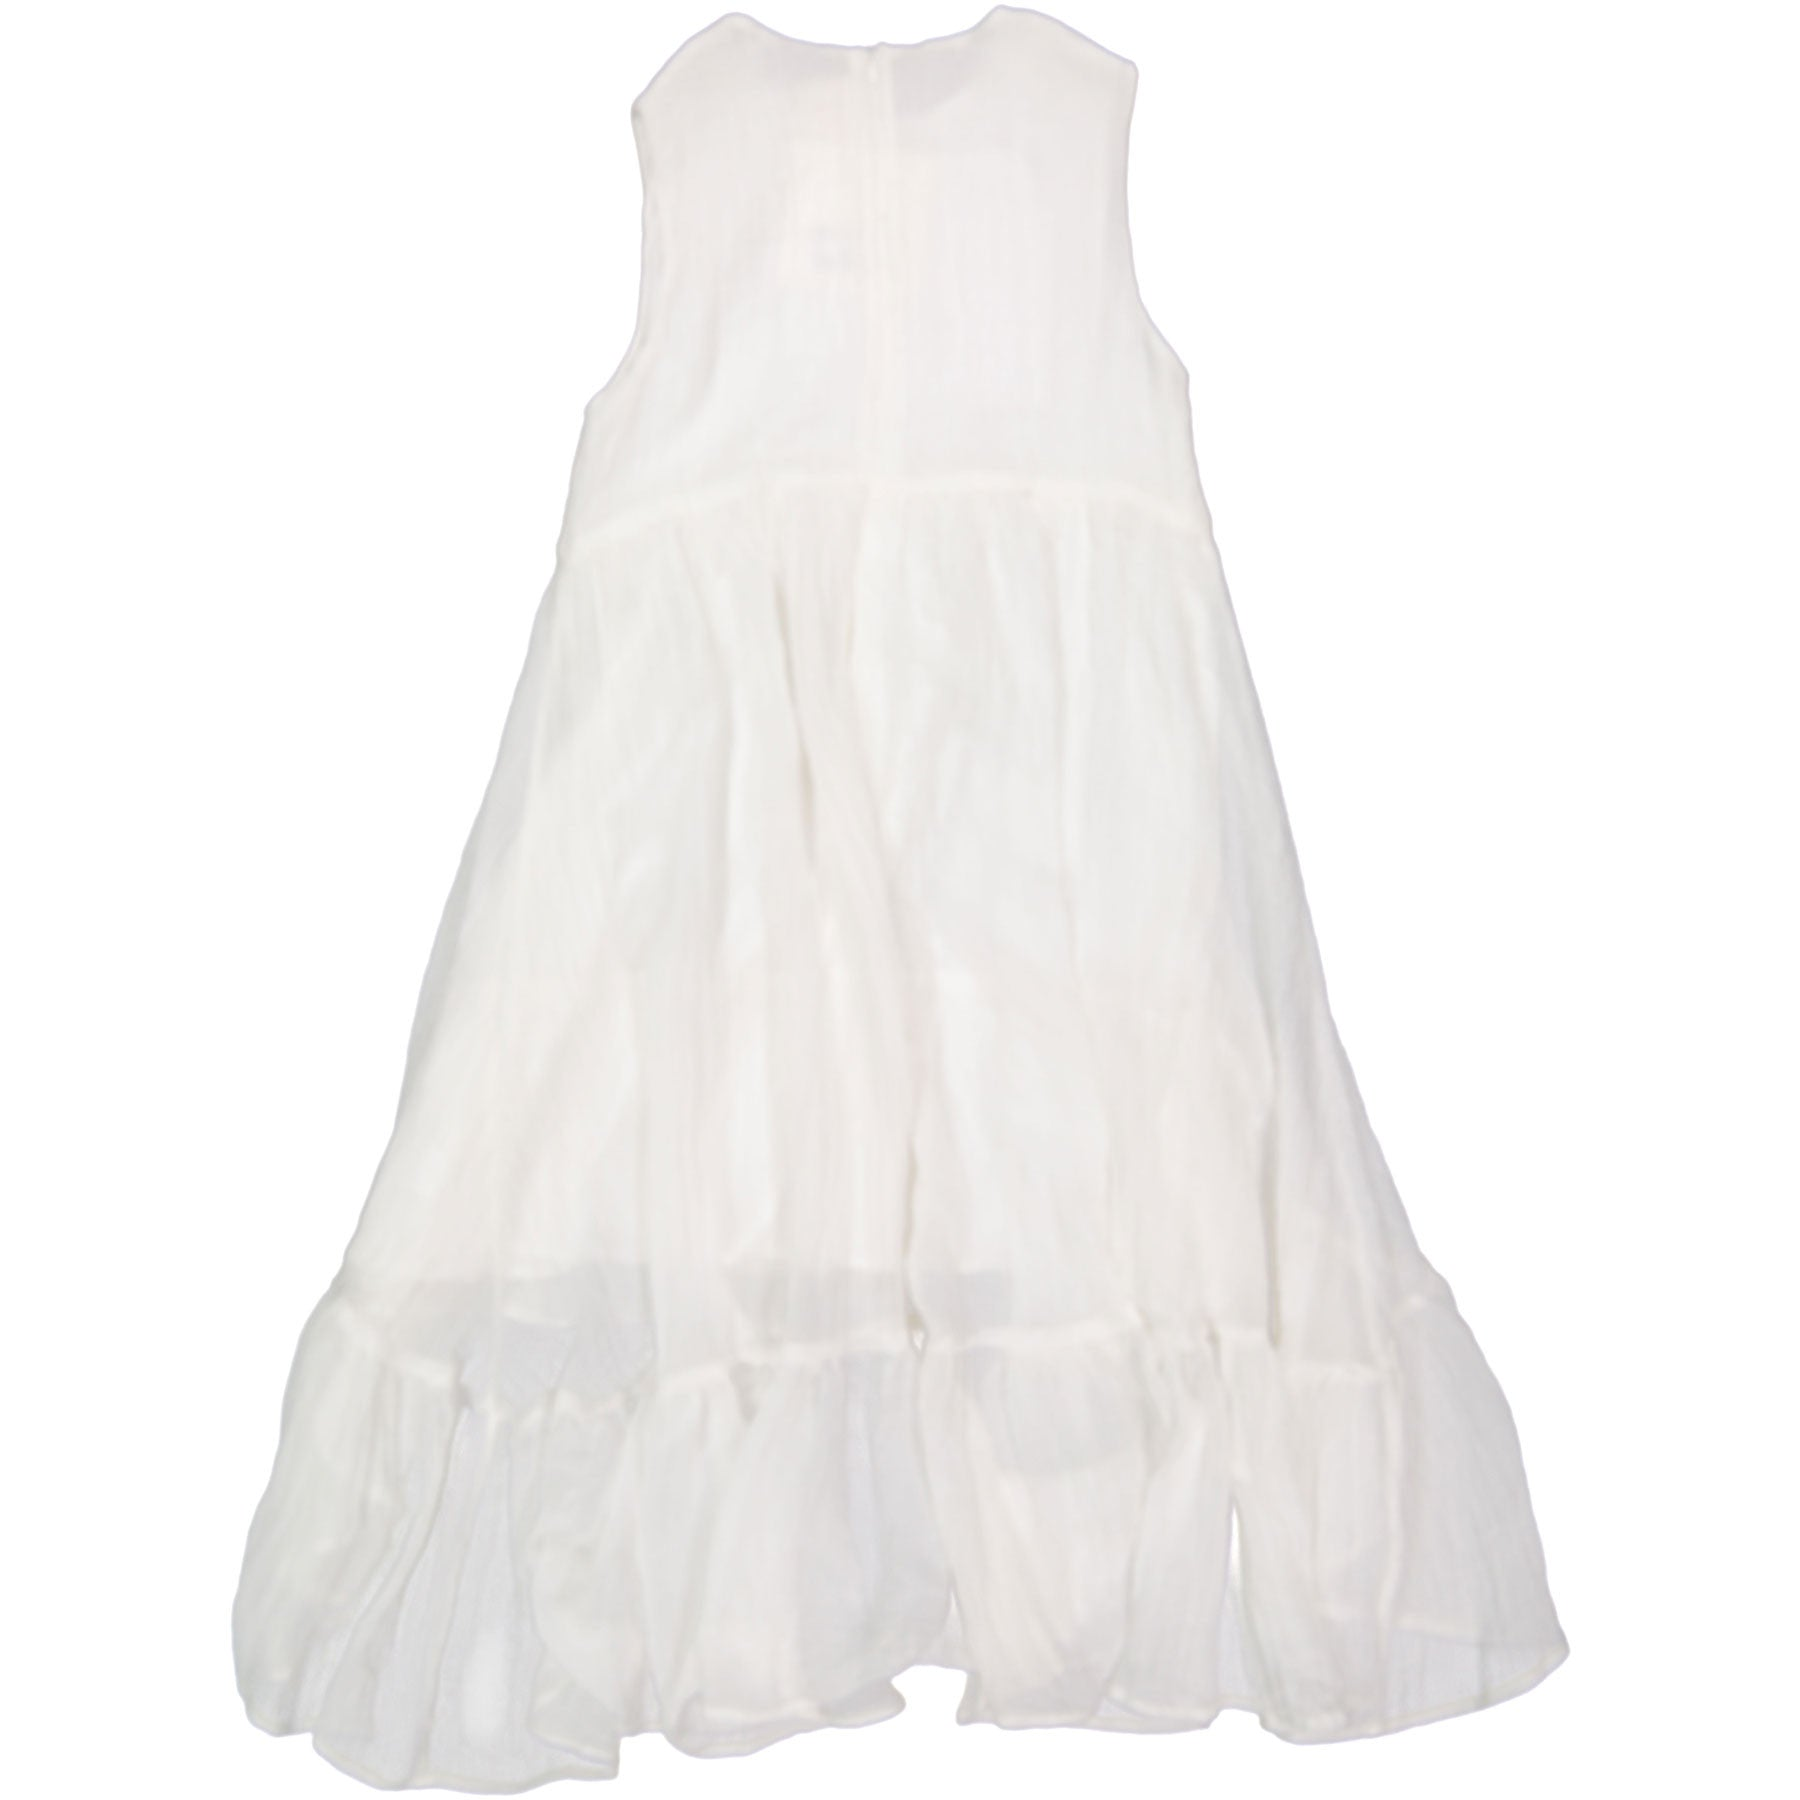 A4 White Tiered Maxi Dress - Ladida